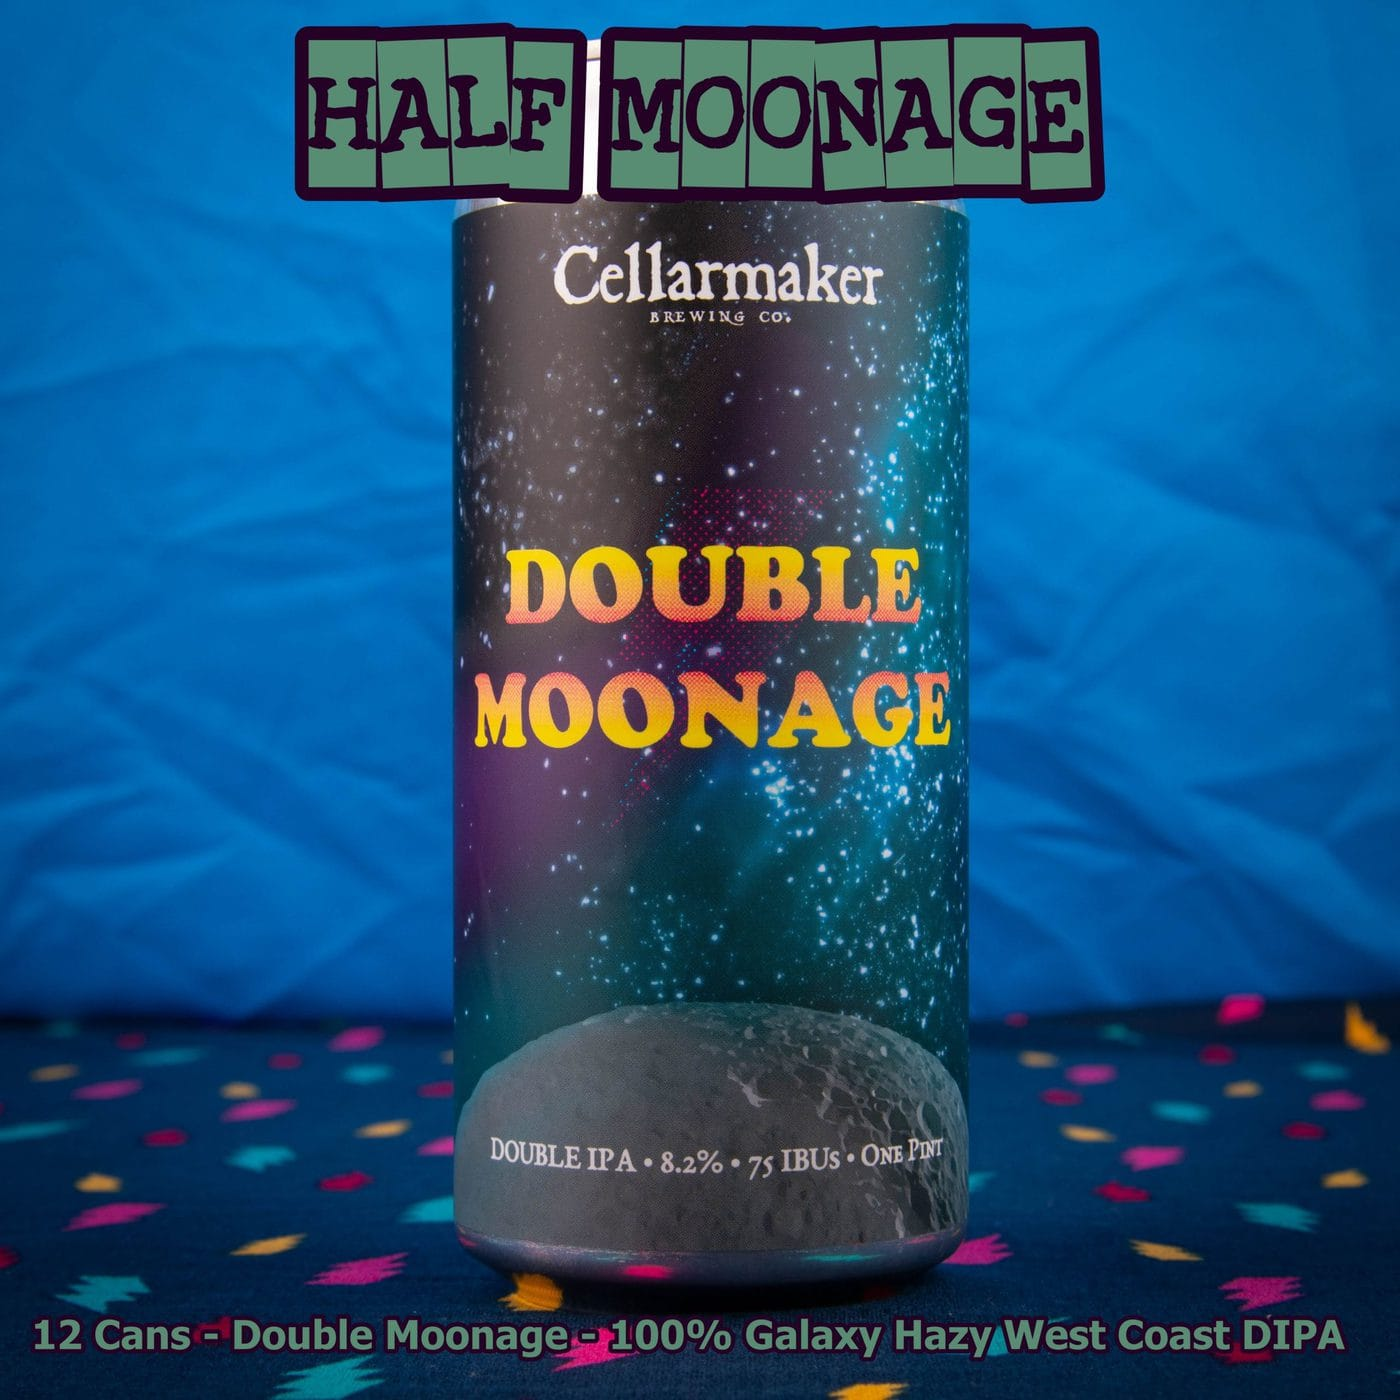 12 CANS Double Moonage Hazy DIPA – Shipping Out Tuesday 5/11 For Next Day Delivery*